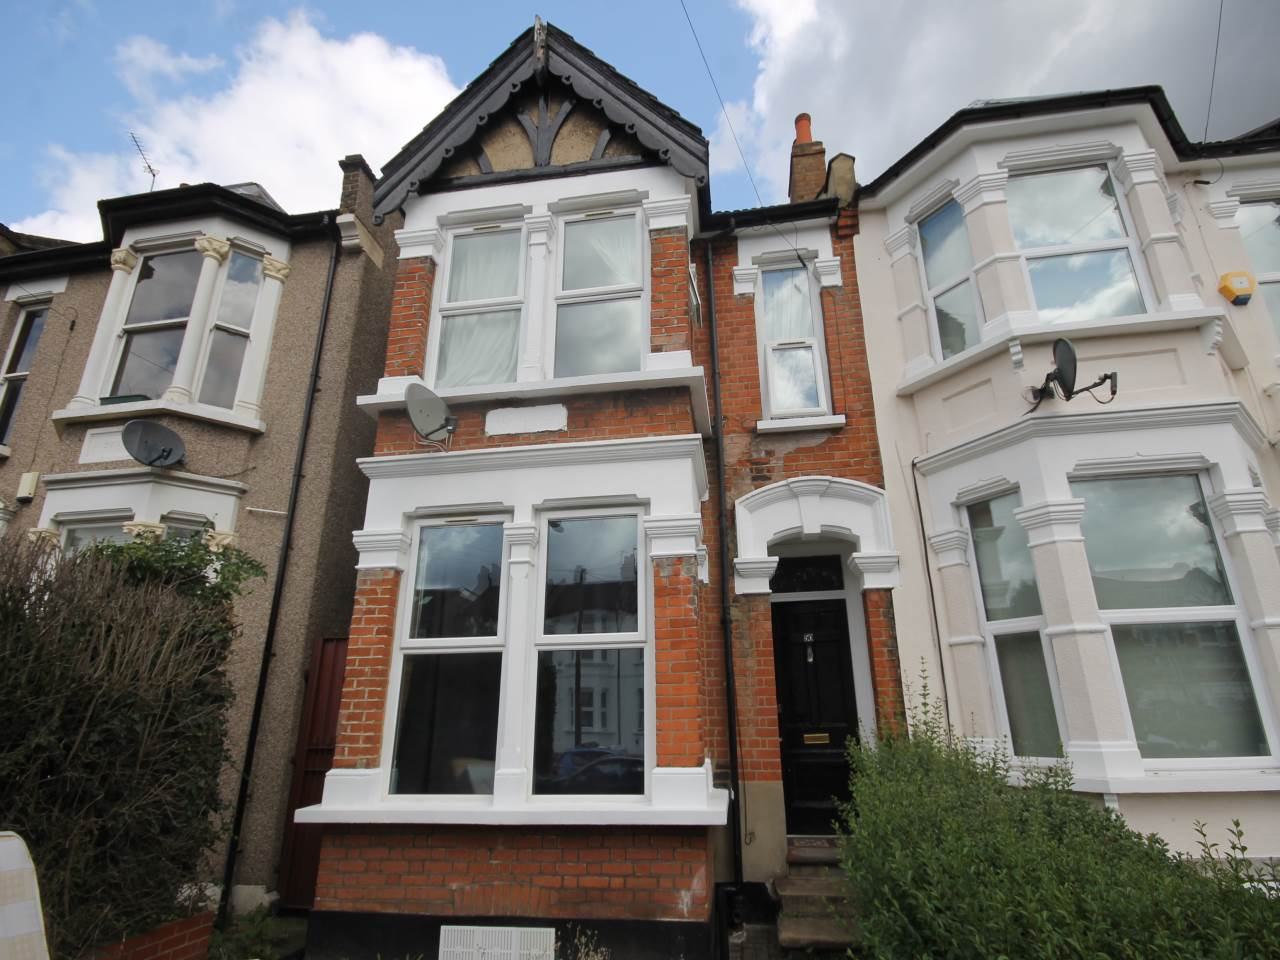 3 bed flat to rent in Leytonstone, E11